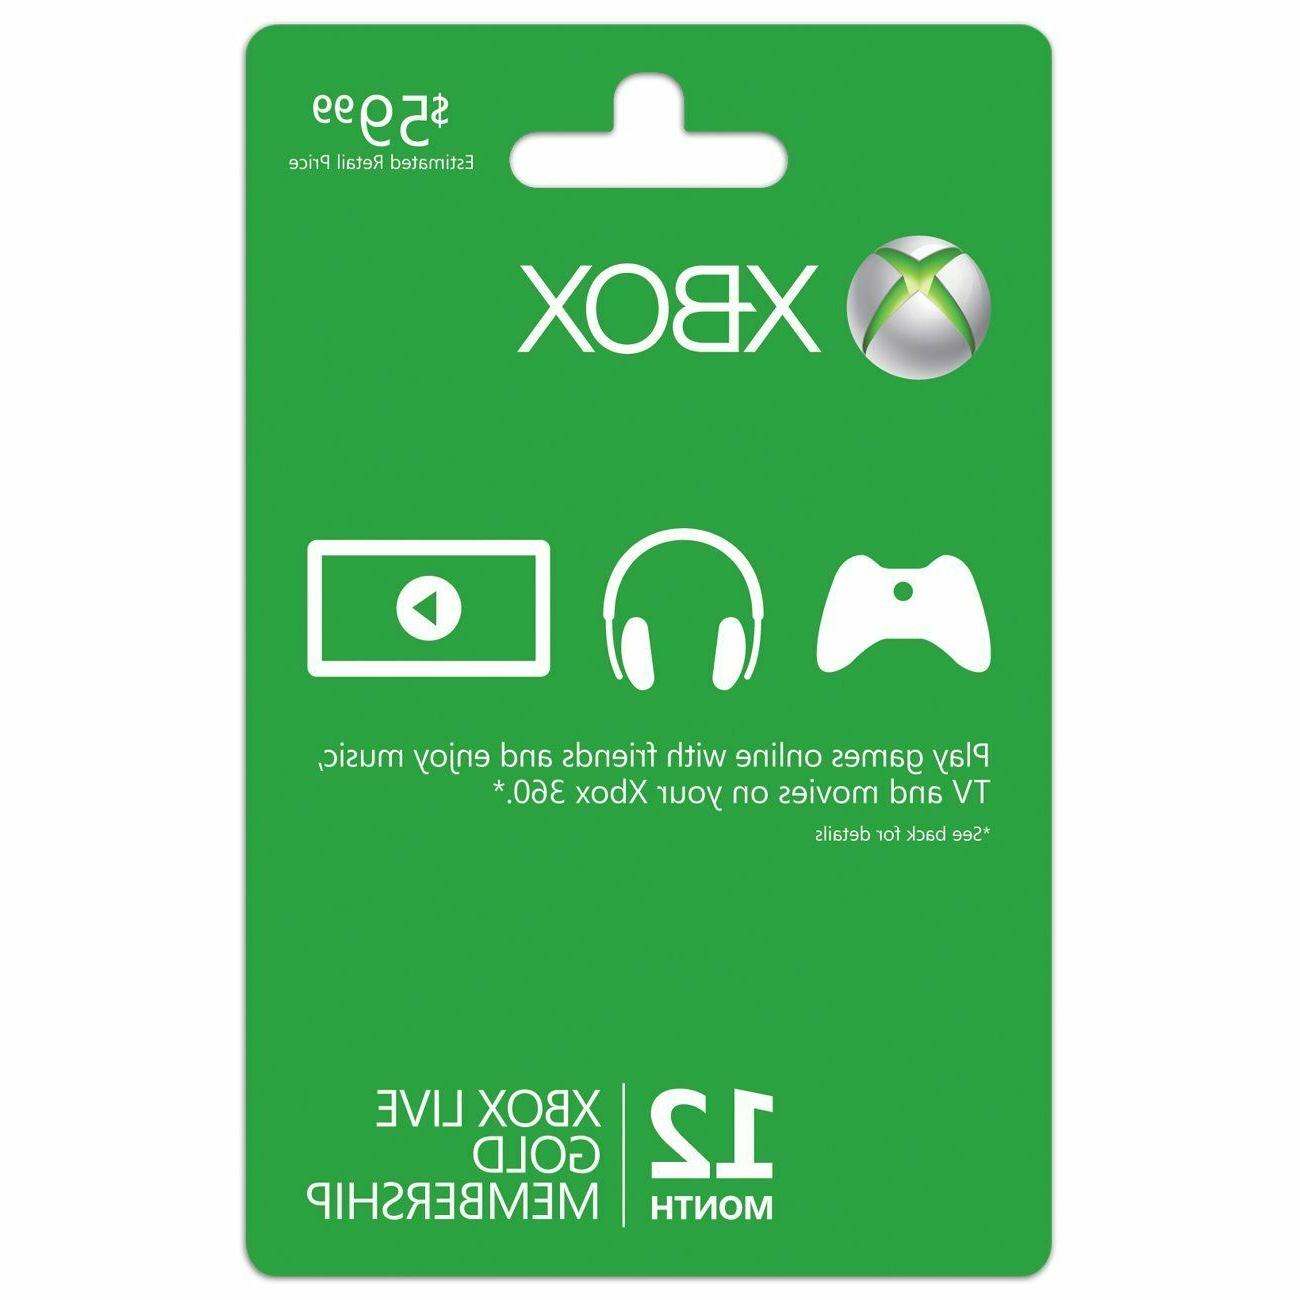 Xbox One/360 Live 12 Month Gold Membership Subscription Code